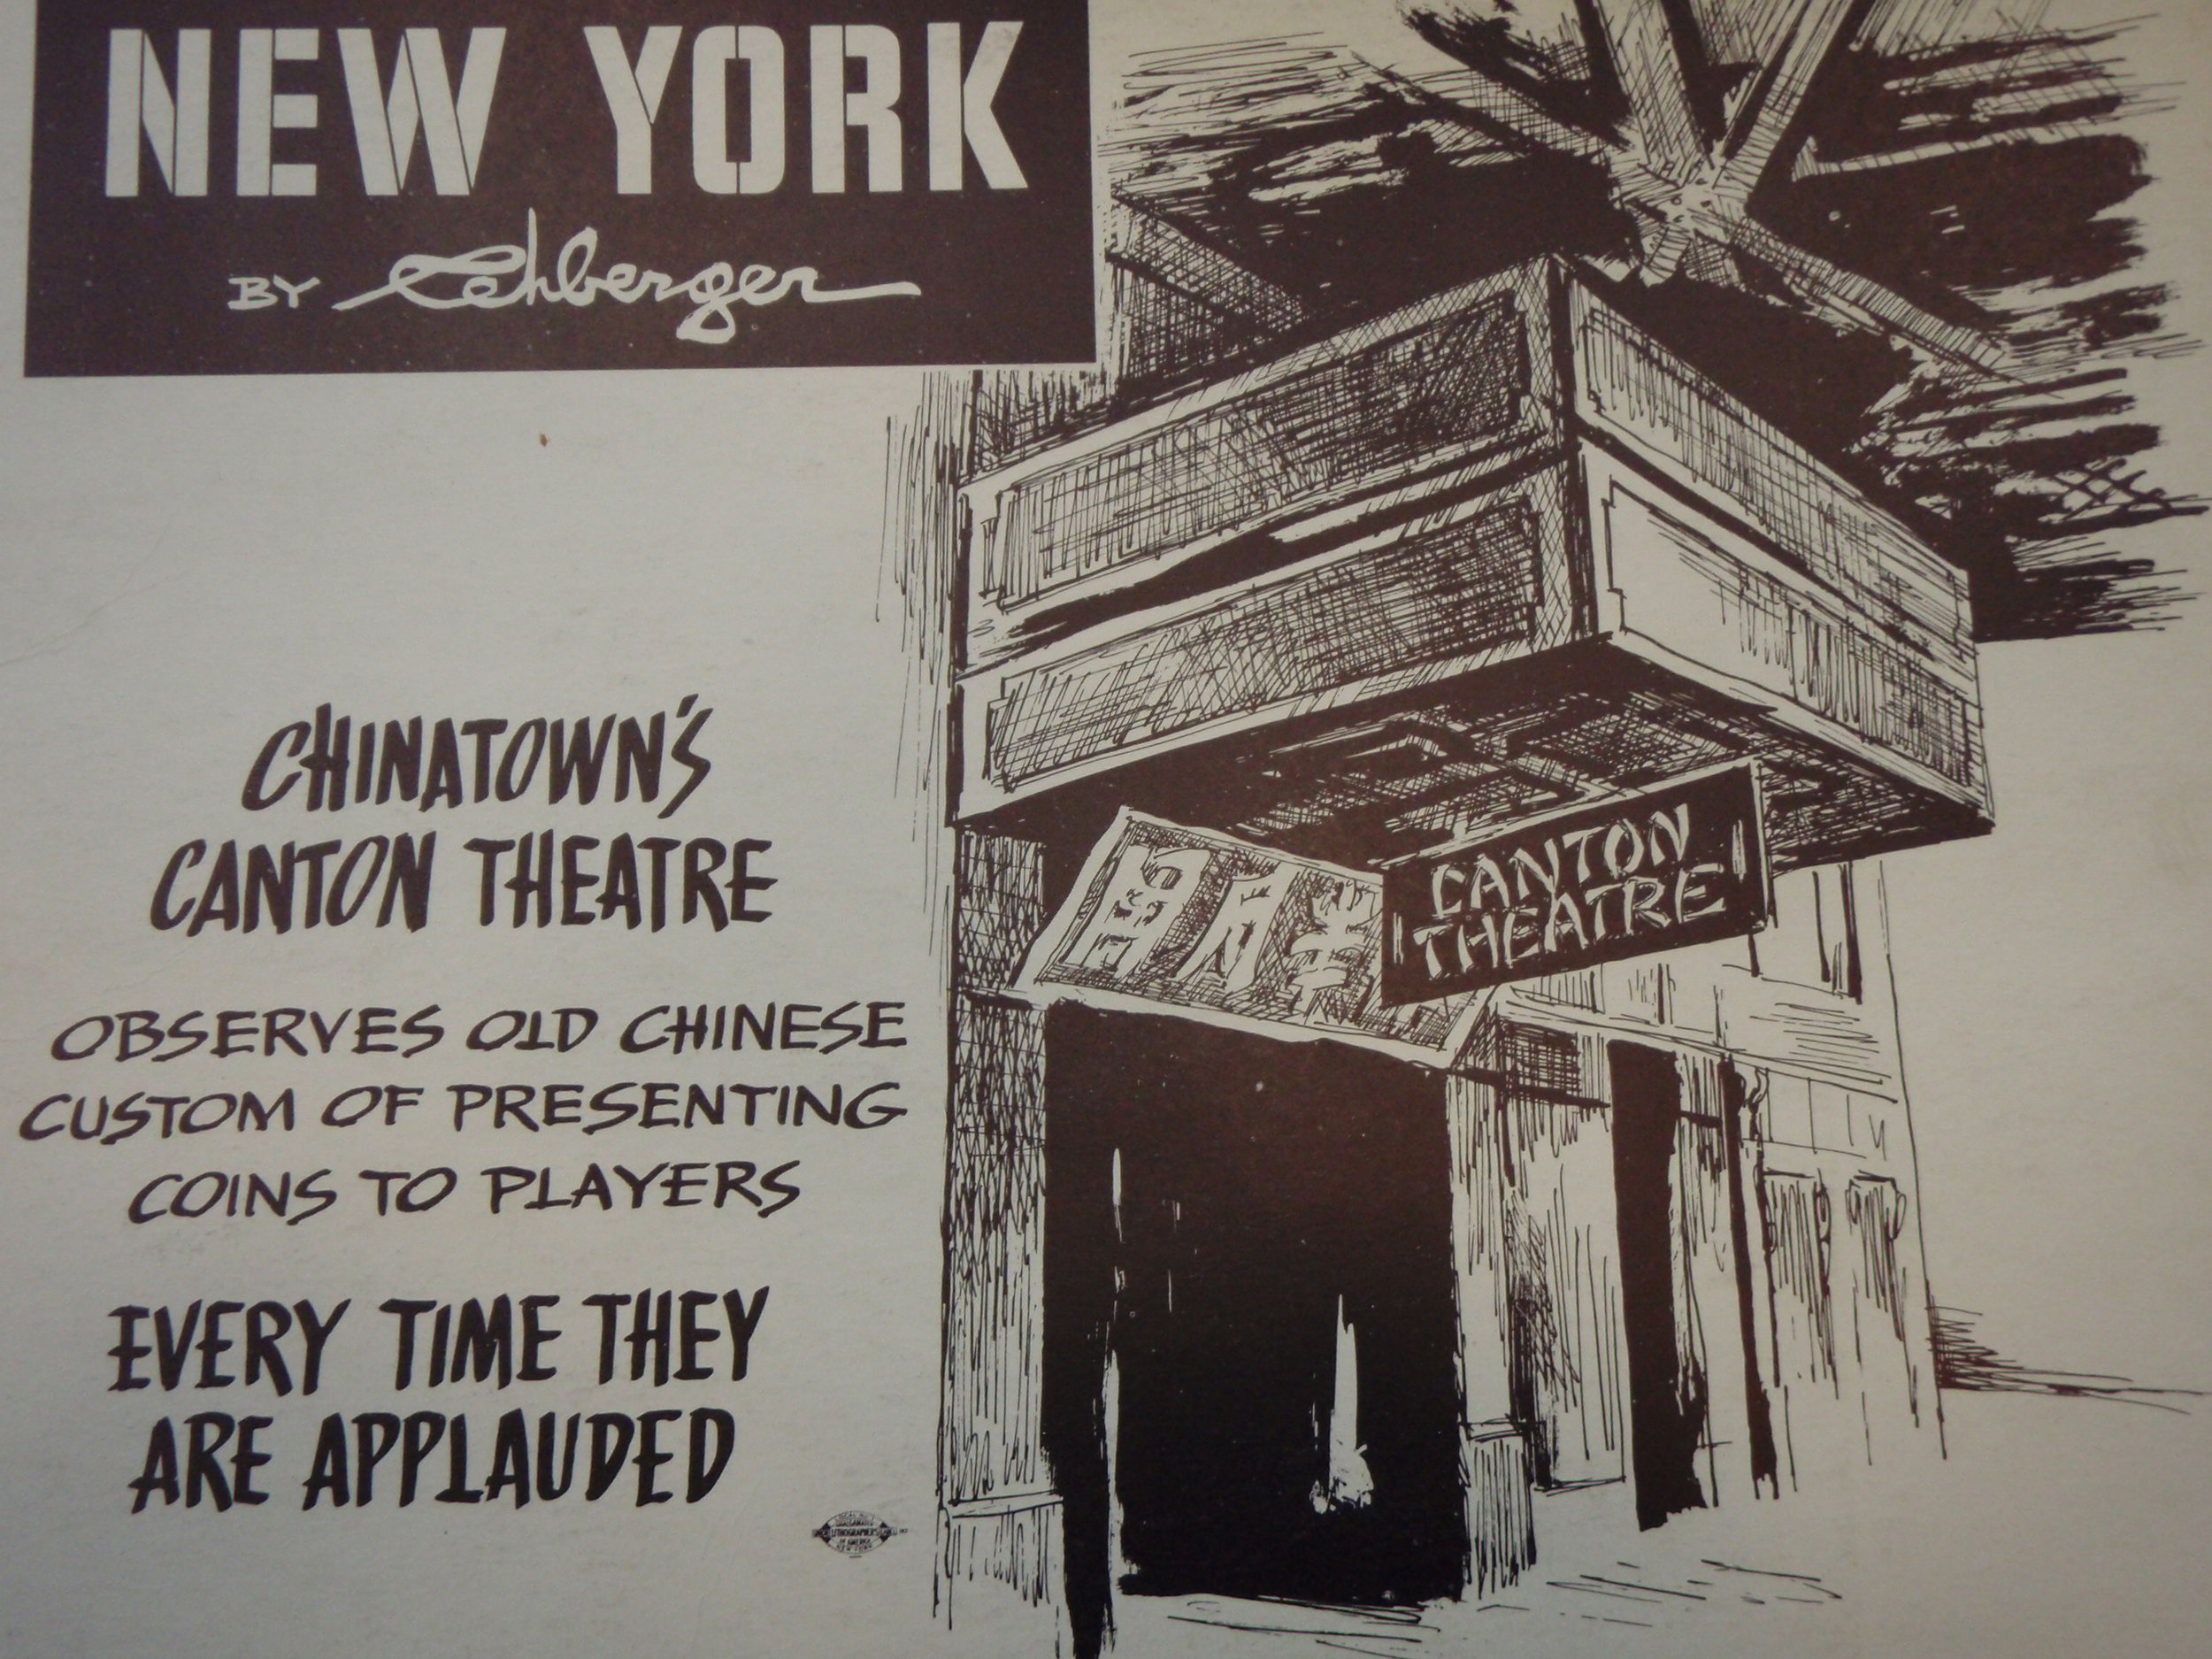 NEW YORK by REHBERGER  1948 #11   Subway Poster  -  New York Subways Advertising Co..JPG